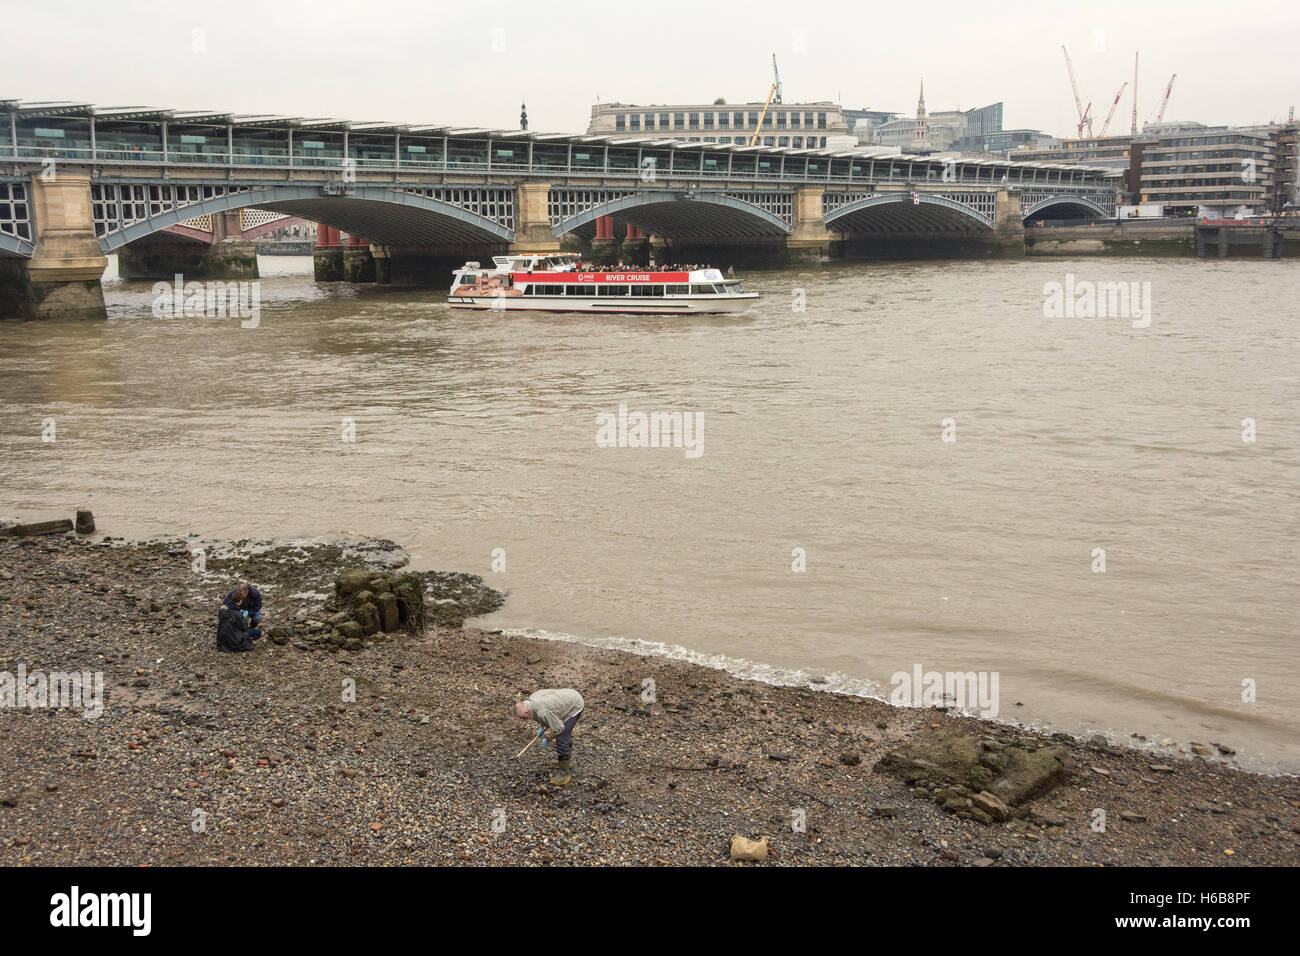 Mudlarking near Blackfriars Bridge on the River Thames in central London, UK. Stock Photo